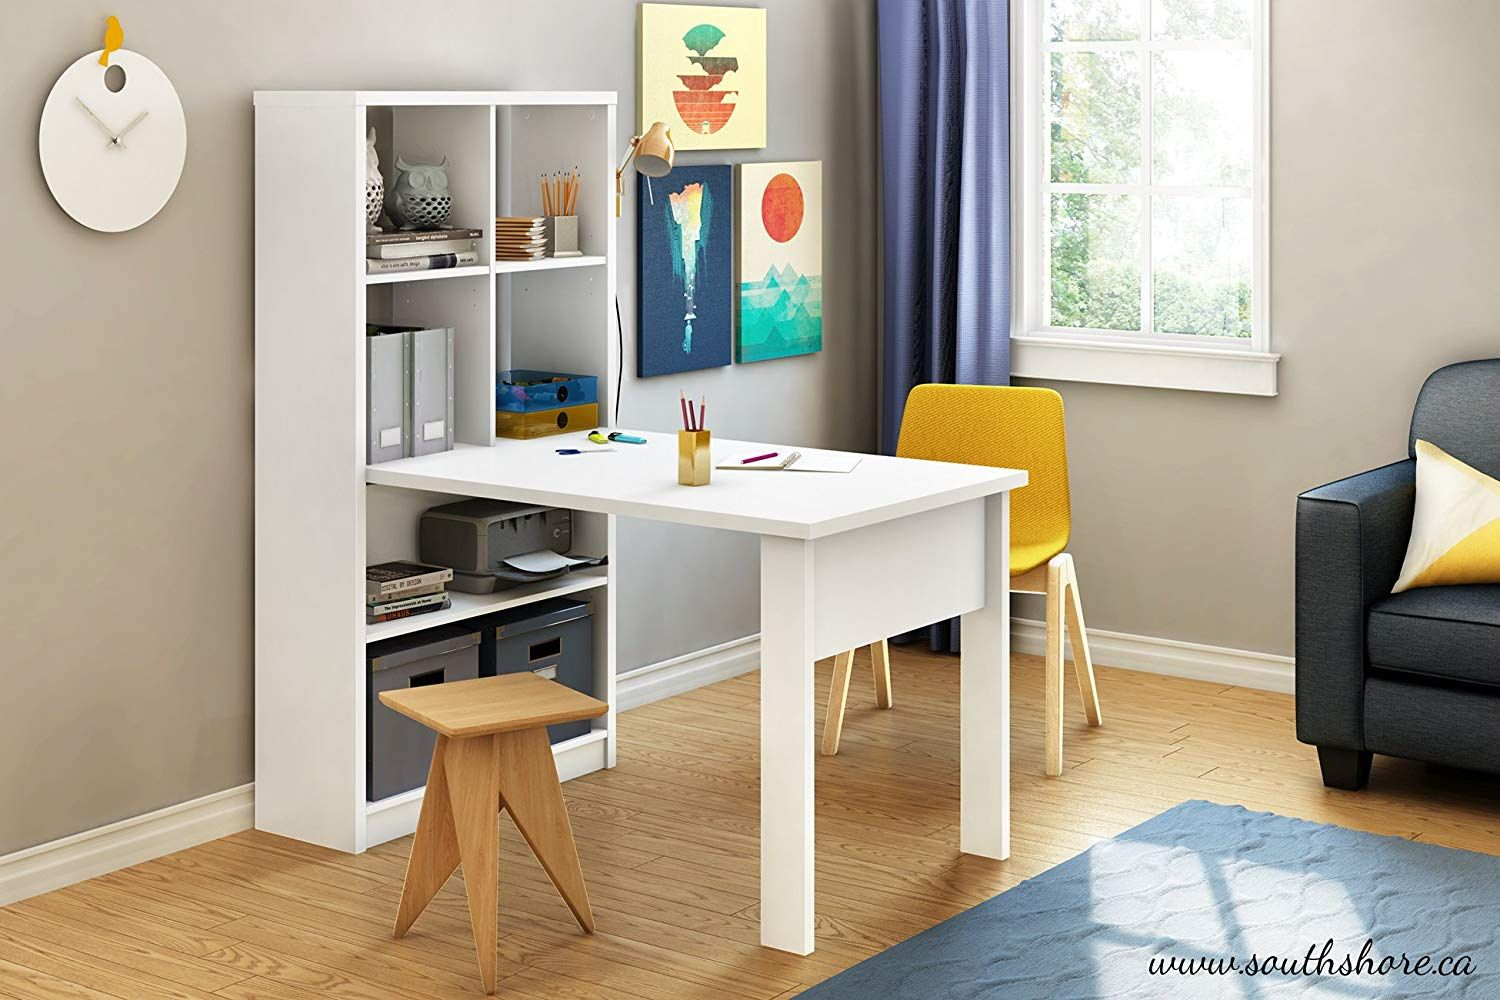 South Shore 7250798 Work Table for 2 and